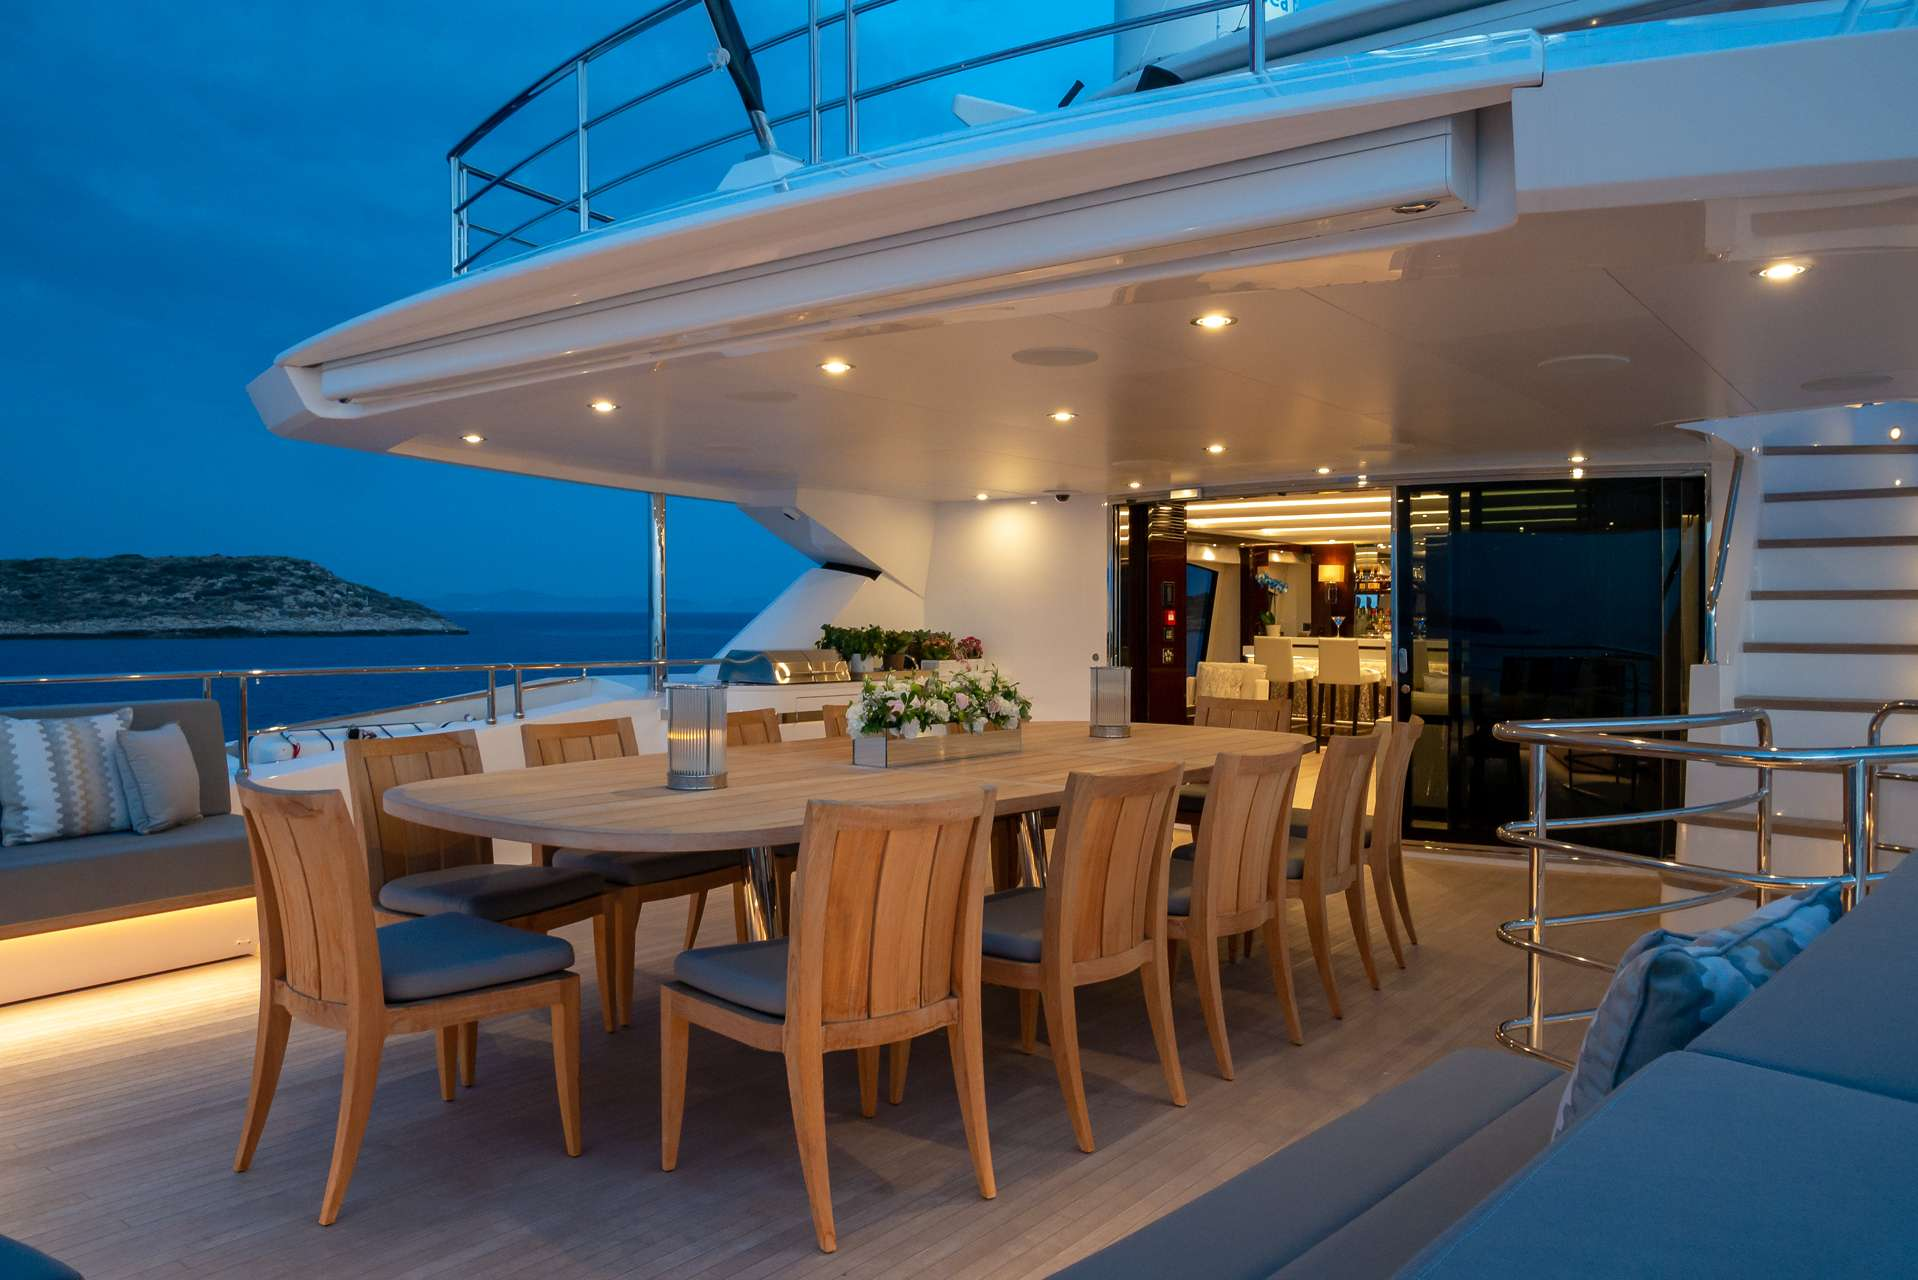 Upper deck dining area